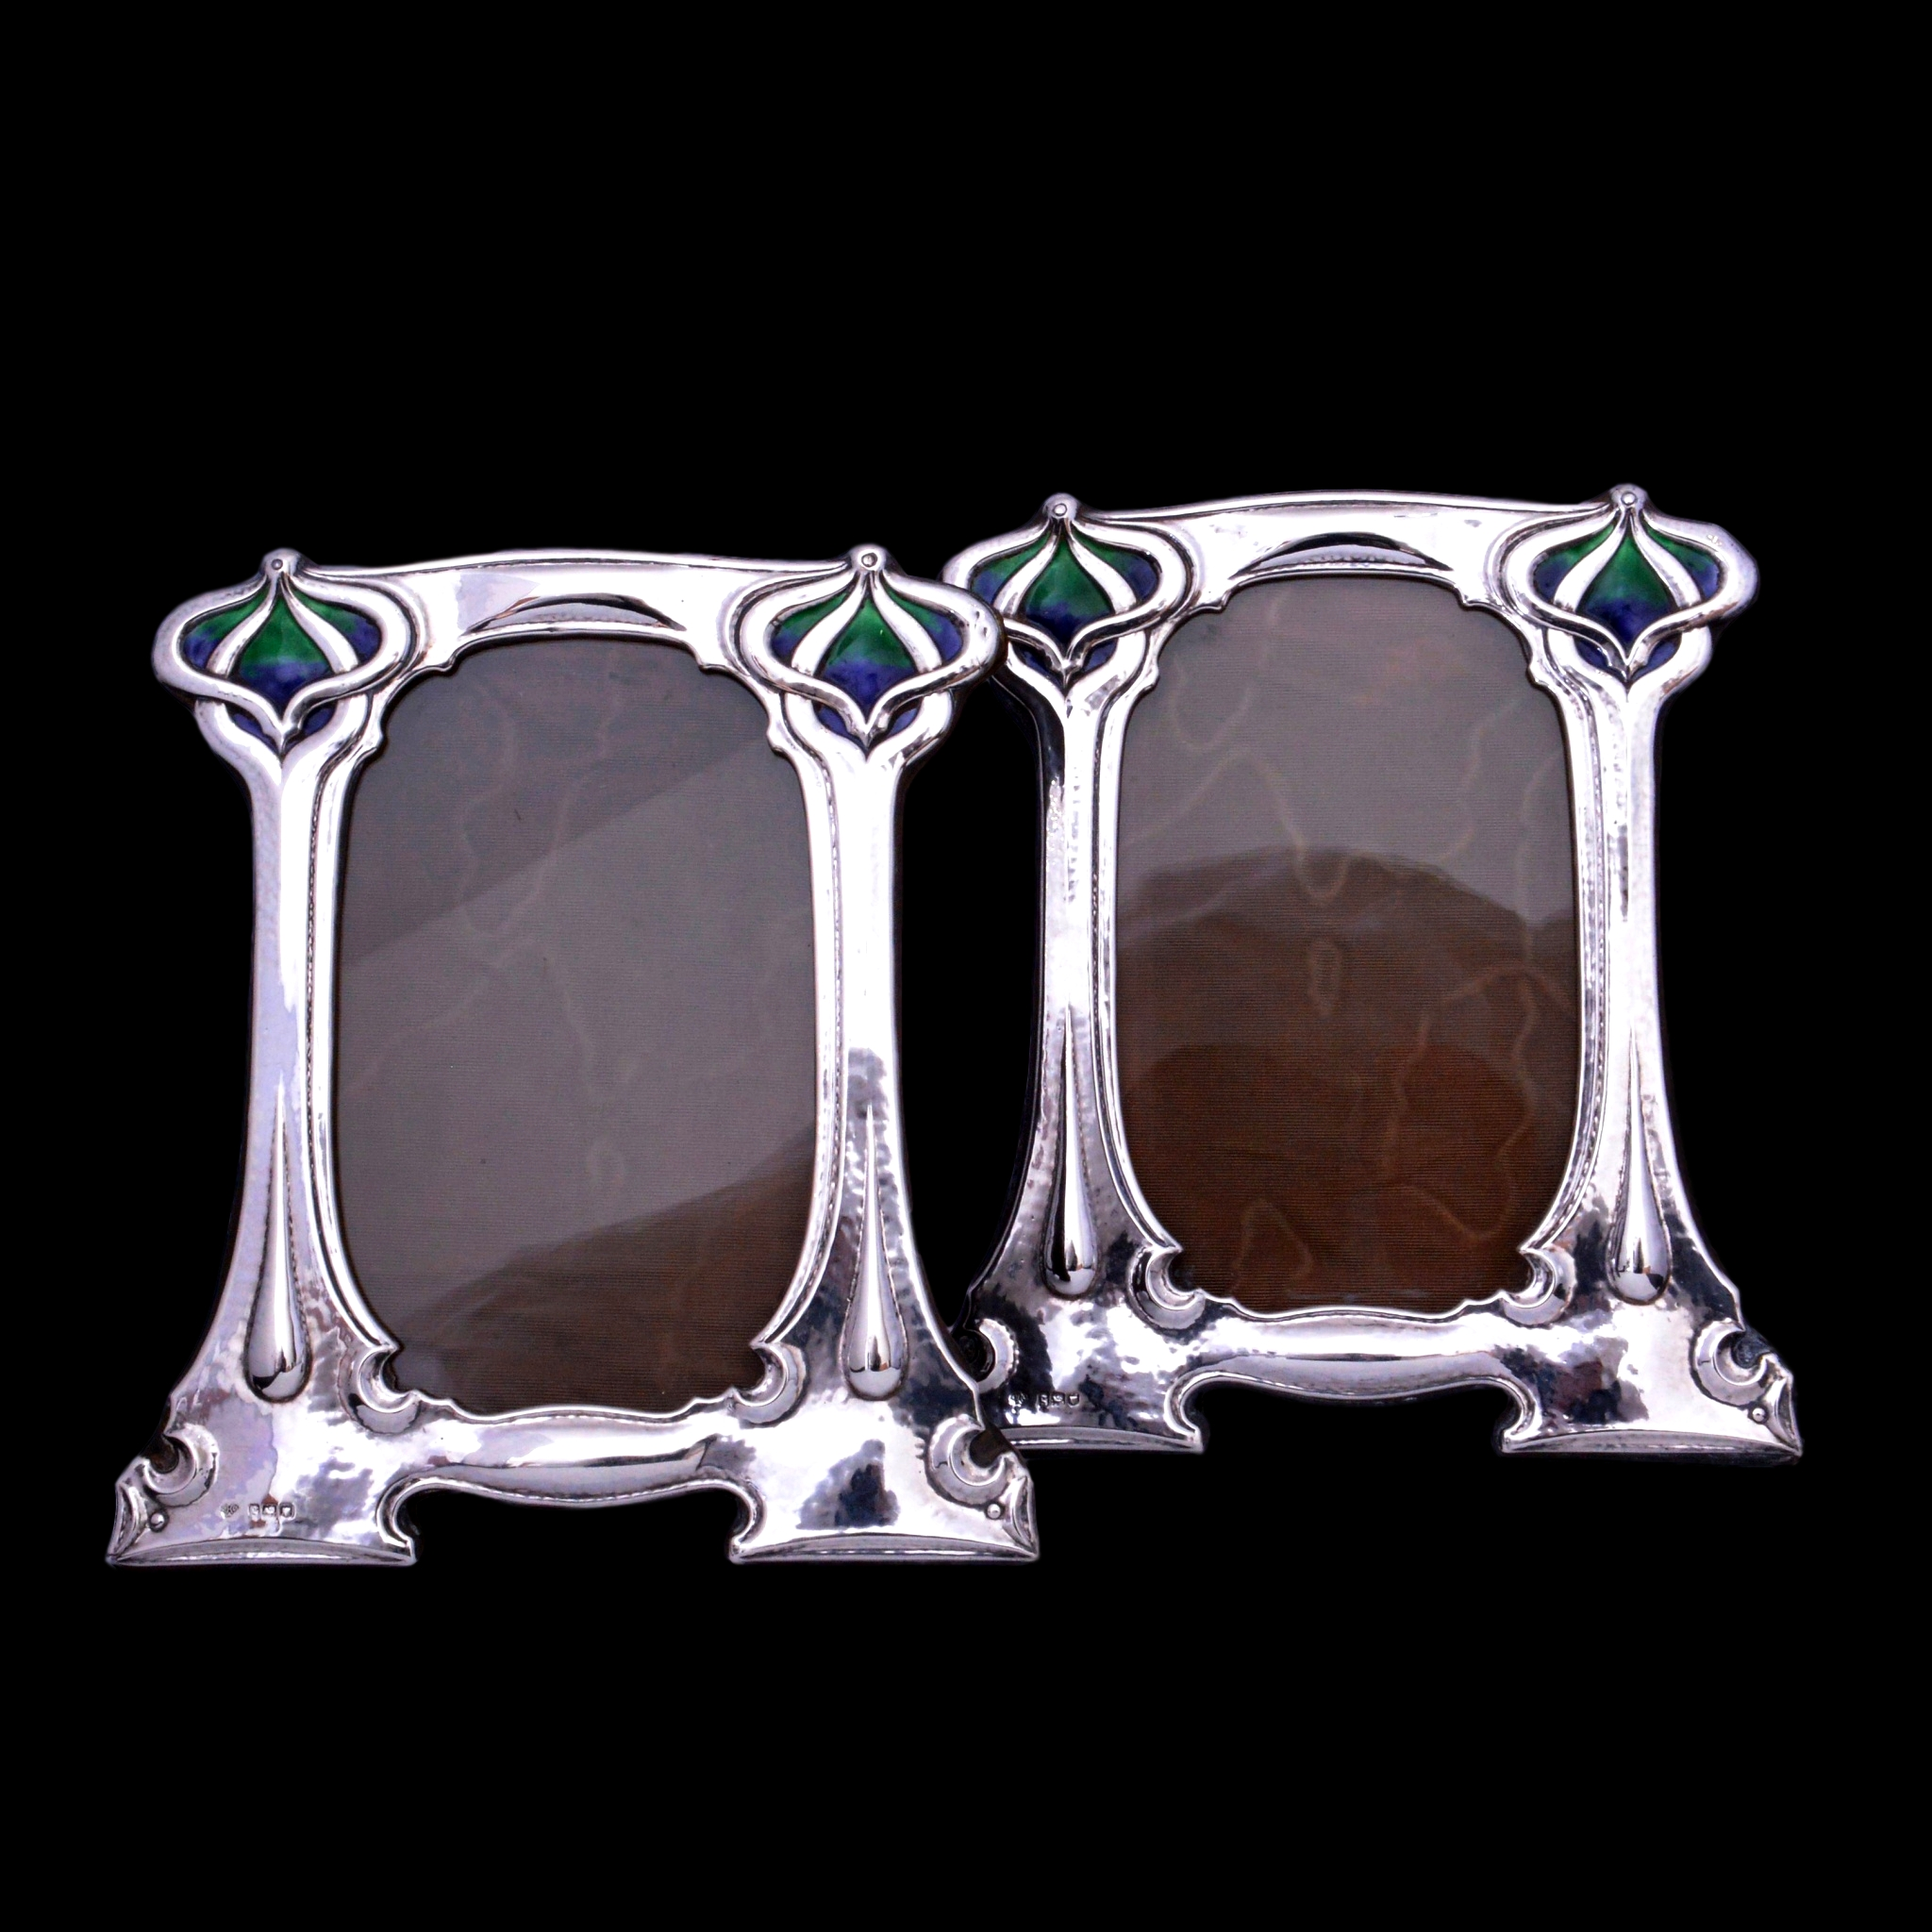 art nouveau silver photo frames, william hutton silver frames